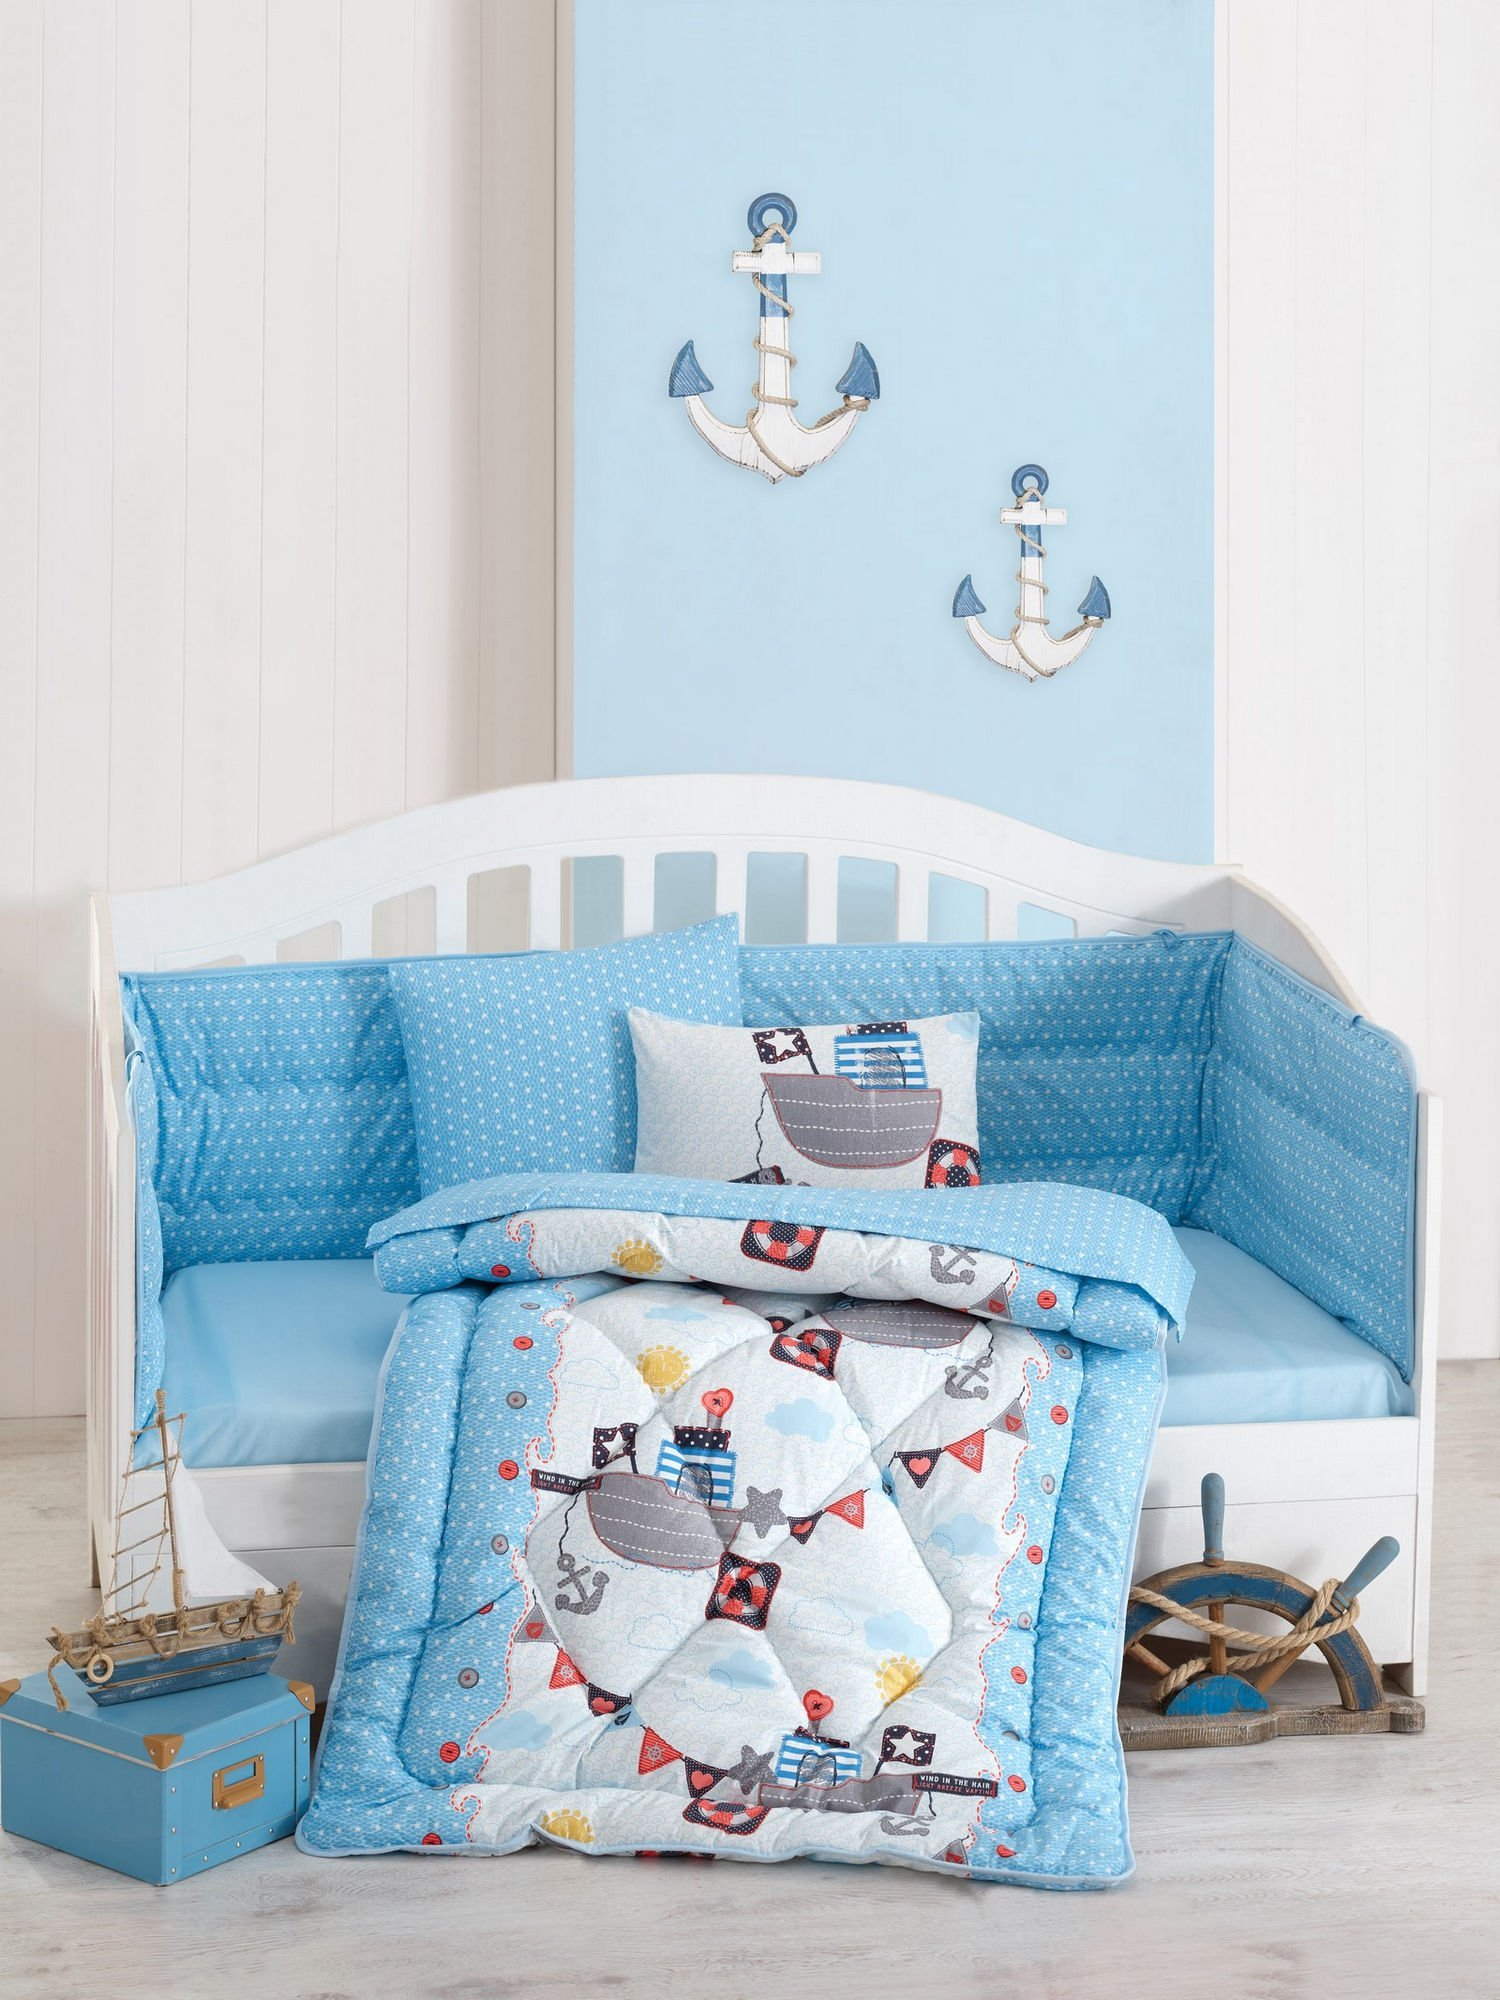 LaModaHome 6 Pcs Luxury Soft Colored Bedroom Bedding 100% Cotton Ranforce Baby Sleep Set Quilt Protector/Soft Relaxing Comfortable Pattern Design Submarine Ship/Baby Bed Size with Flat Seet